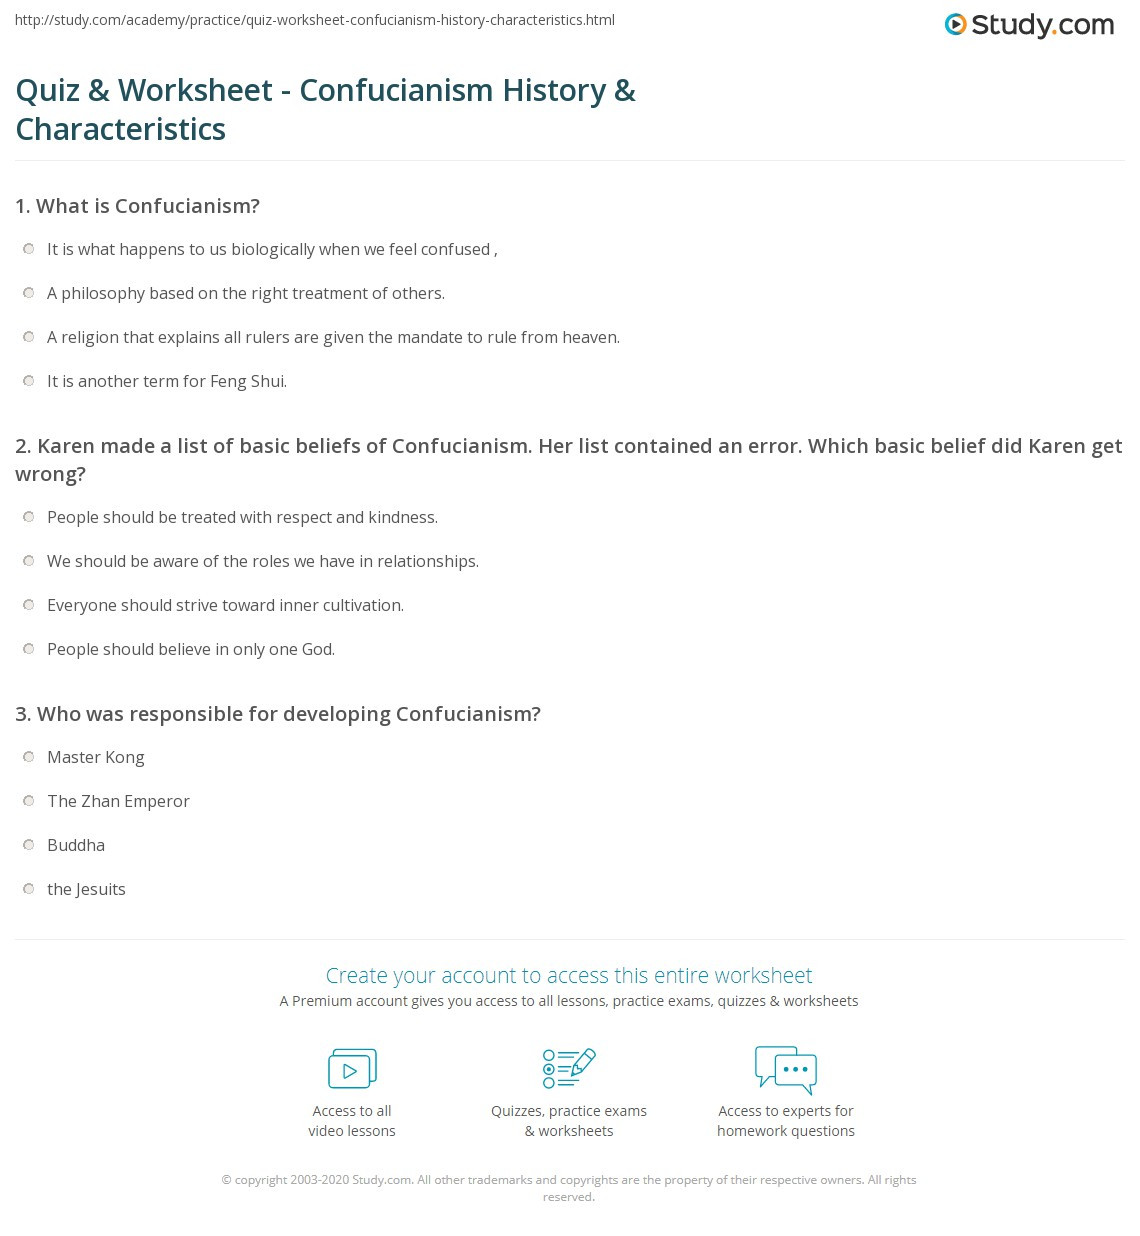 Confucius Worksheet for Middle School Quiz & Worksheet Confucianism History & Characteristics